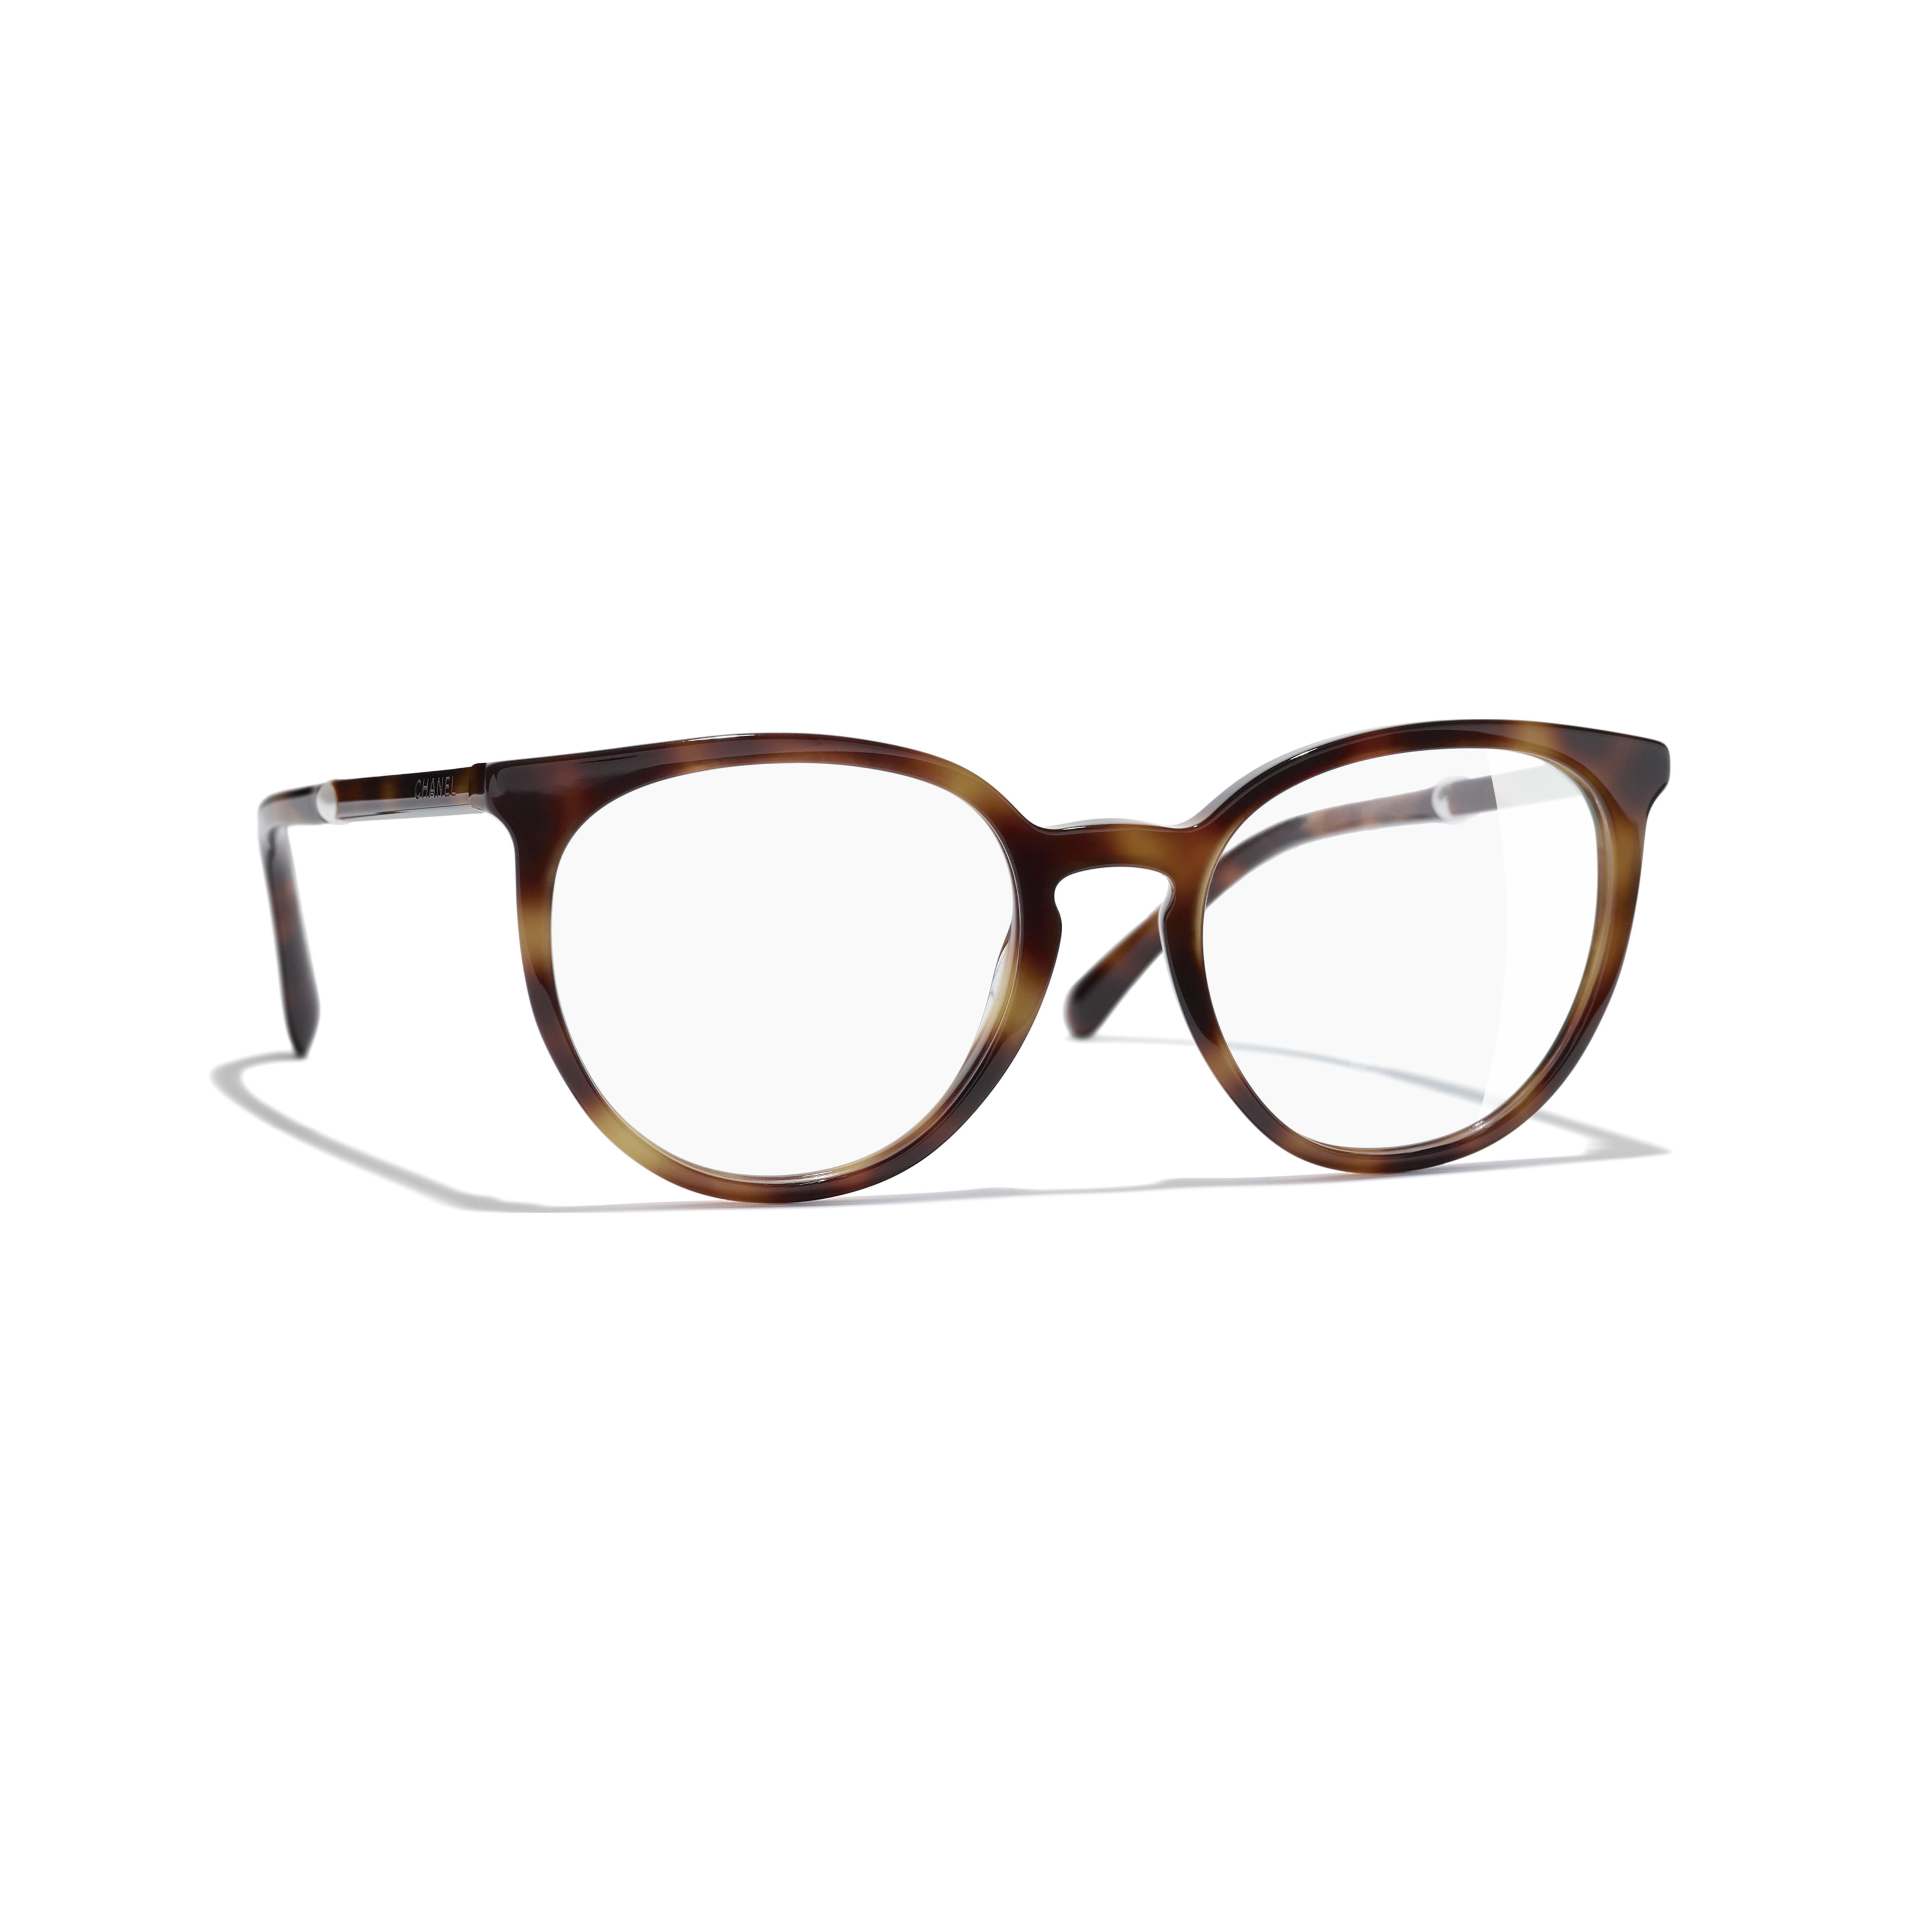 Pantos Eyeglasses - Light Tortoise - Acetate & Imitation Pearls - CHANEL - Default view - see standard sized version